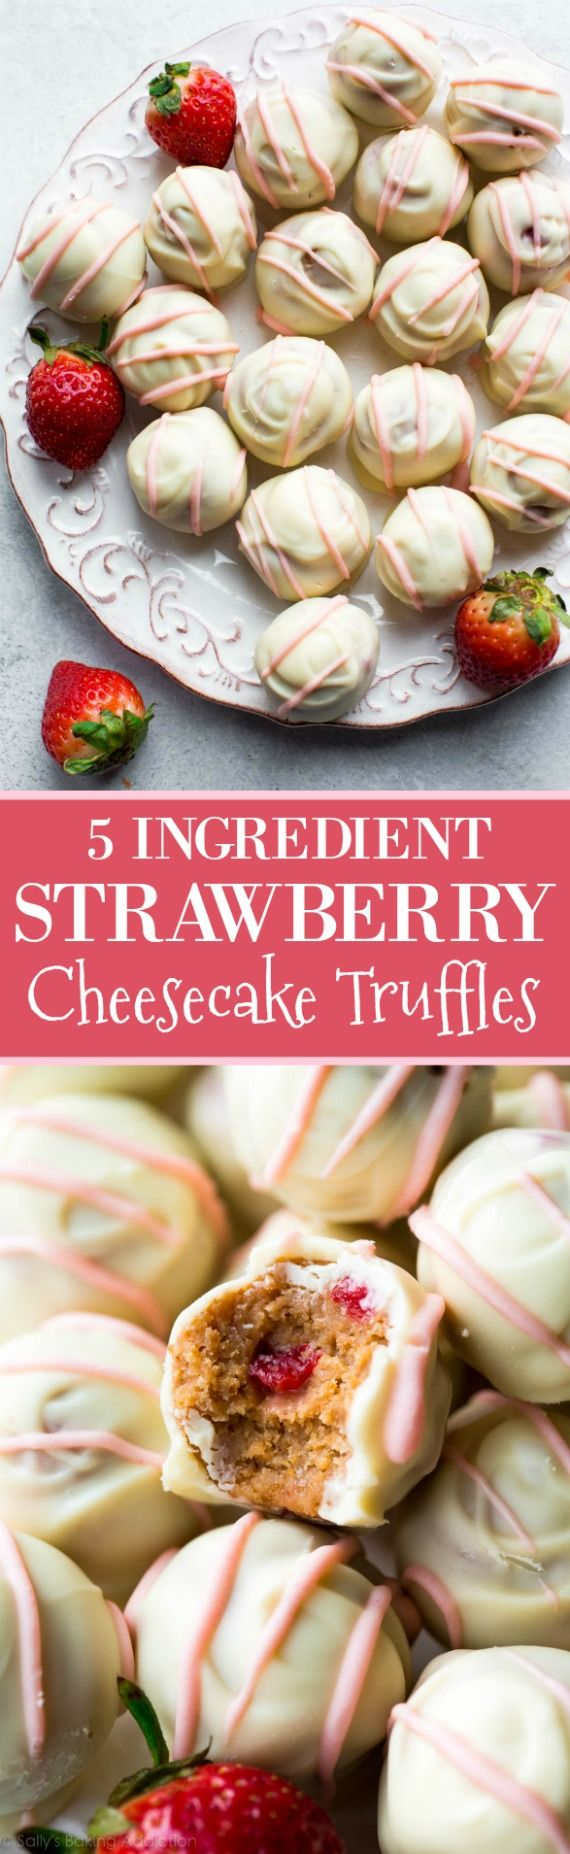 EASY 5 ingredient strawberry cheesecake truffles made with cream cheese, fresh strawberries, white chocolate, and graham cracker!